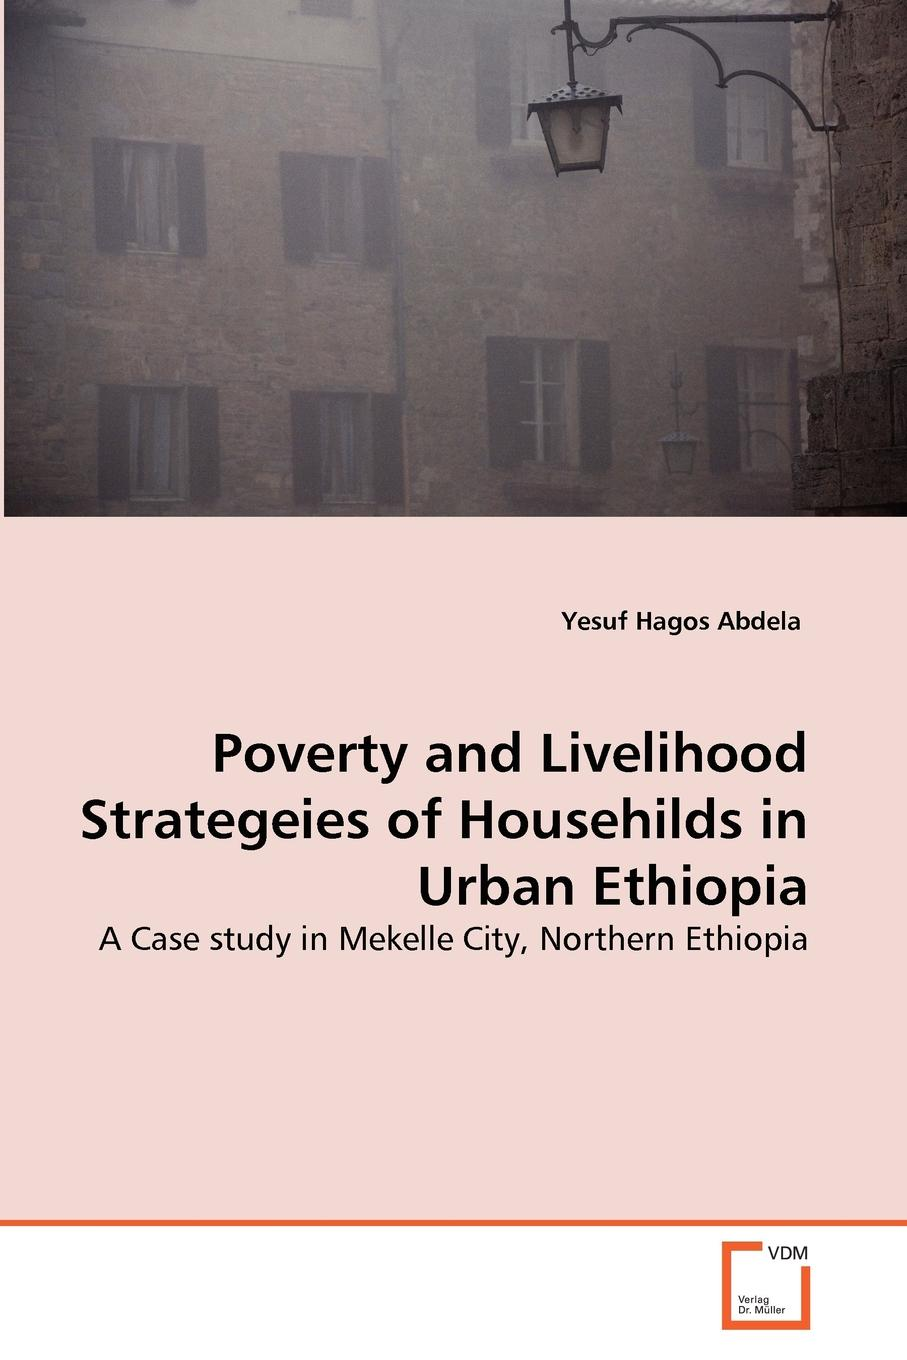 Yesuf Hagos Abdela Poverty and Livelihood Strategeies of Househilds in Urban Ethiopia 1pcs lot free shipping 8 inch capacitive touch screen external screen ad c 800916 fpc